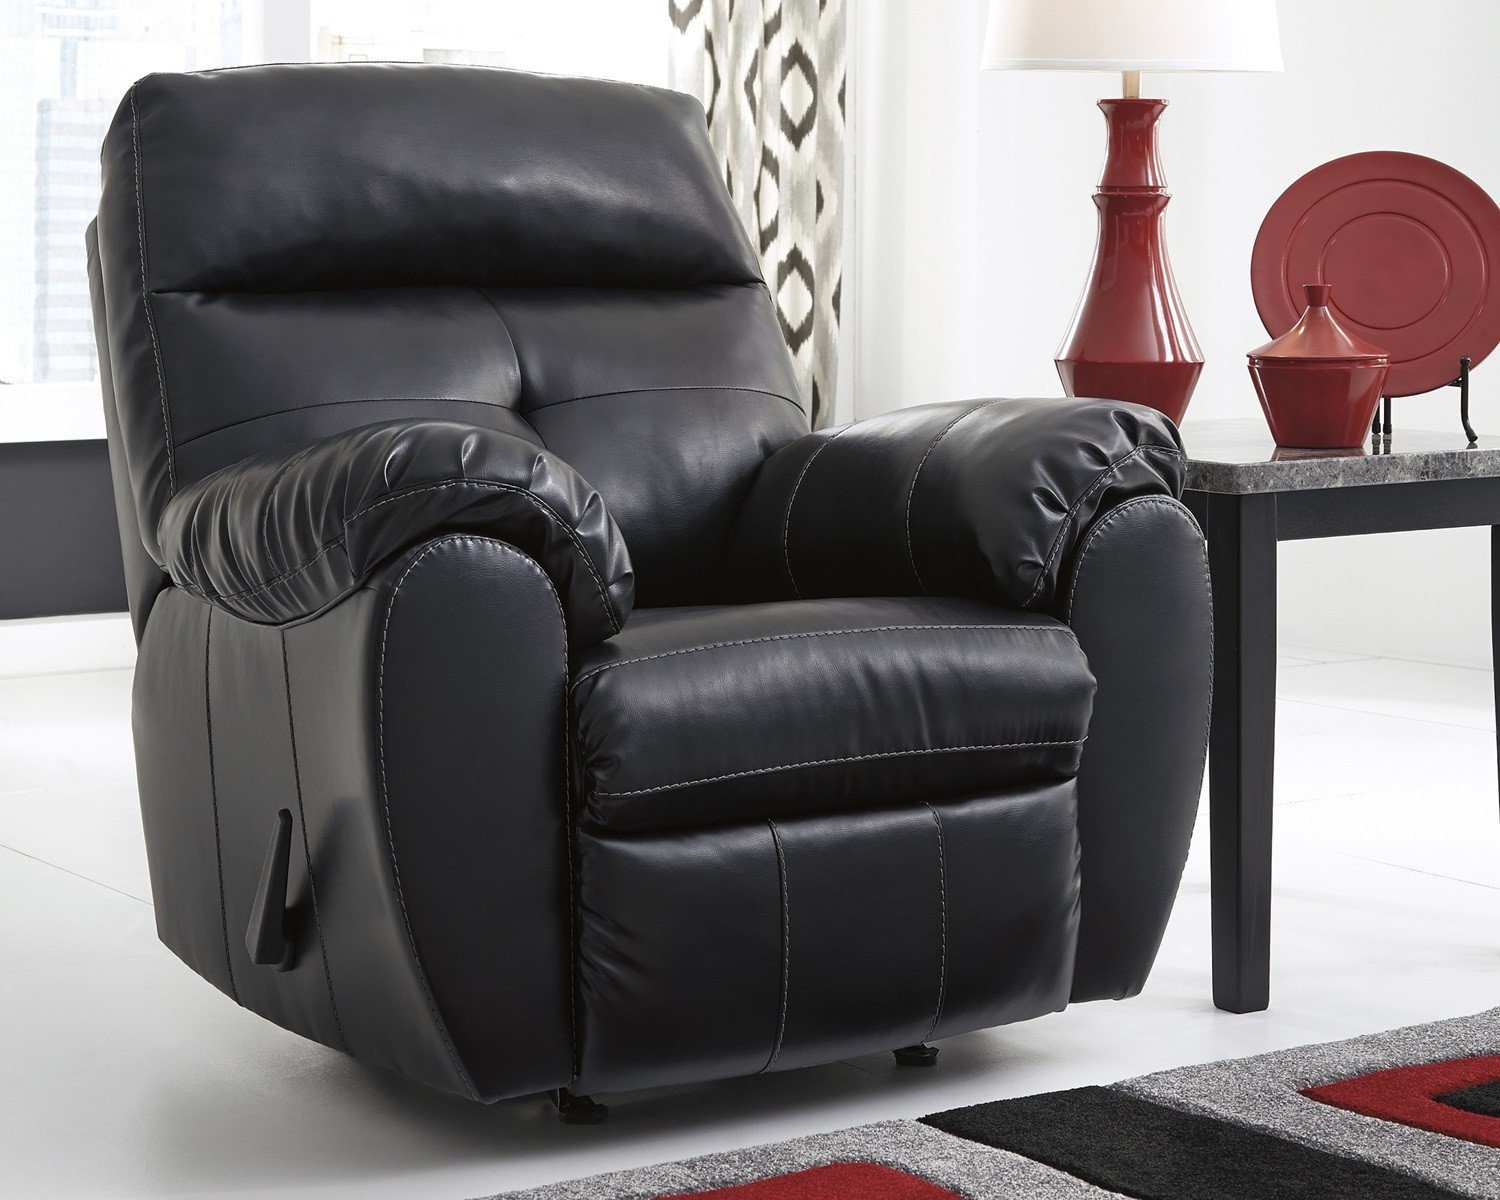 Casual Contemporary Living Room Inspirational Midnight Black Casual Contemporary Living Room Furniture Set by ashley